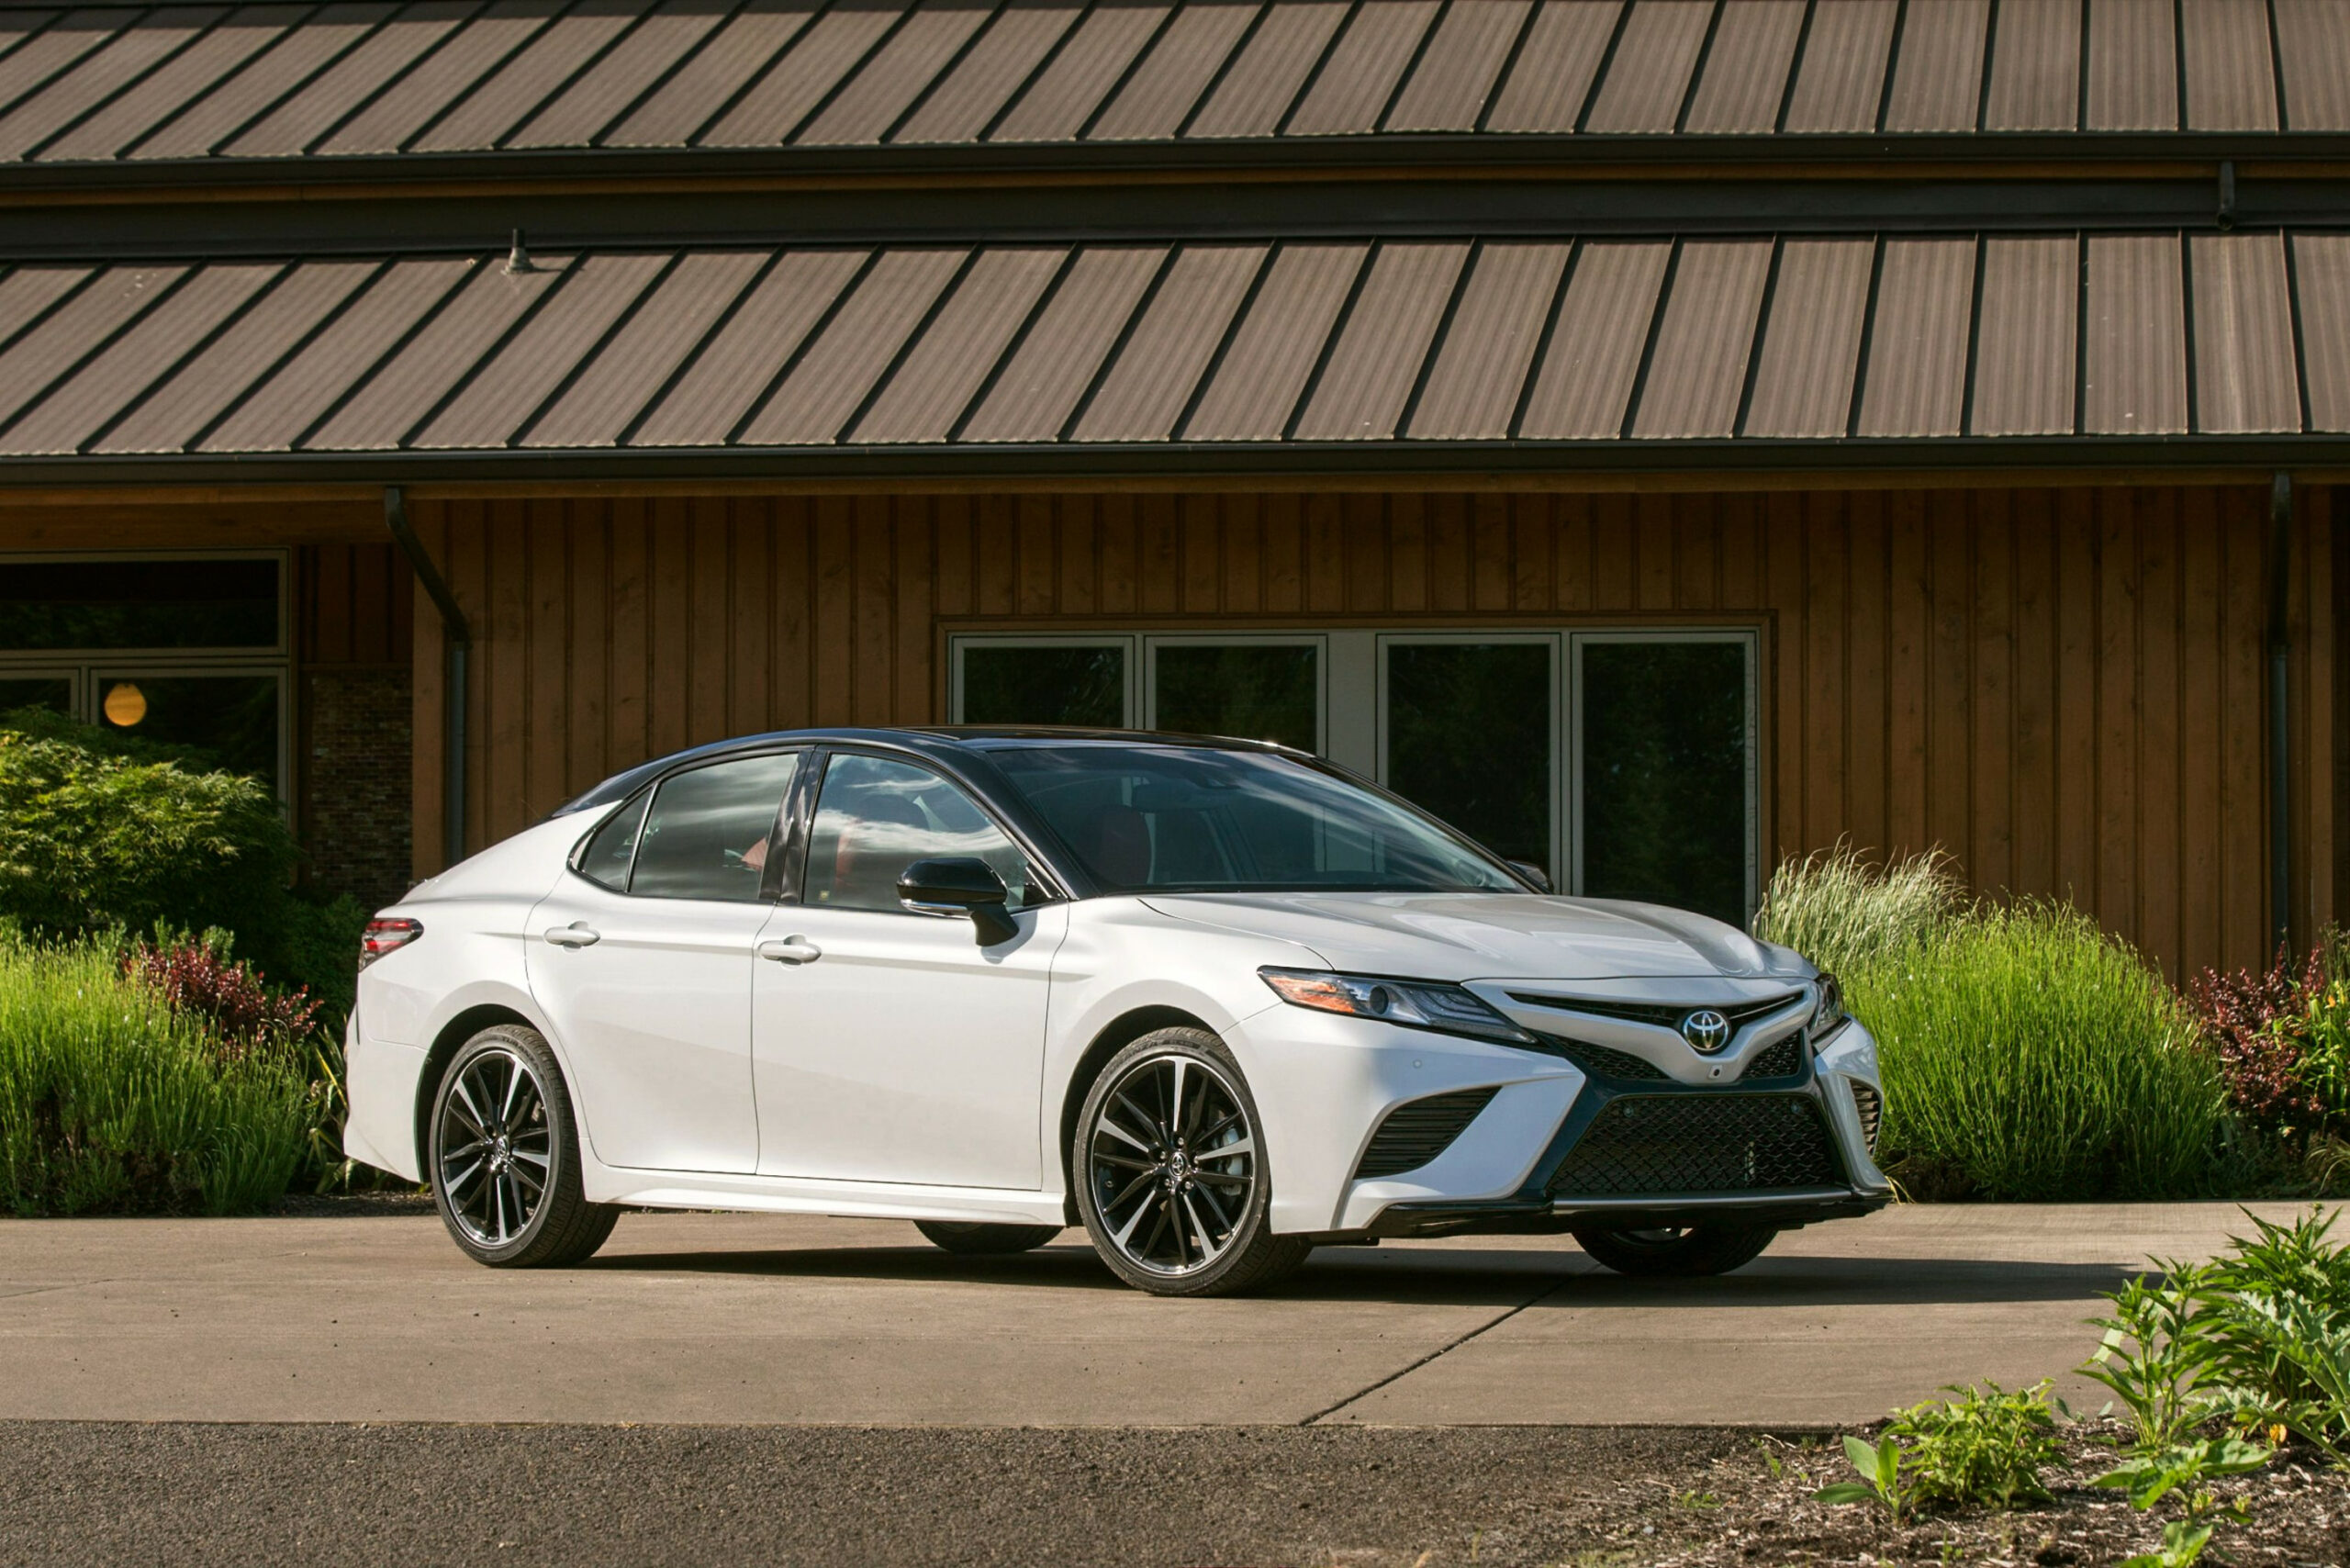 8 Toyota Camry Review, Pricing, and Specs